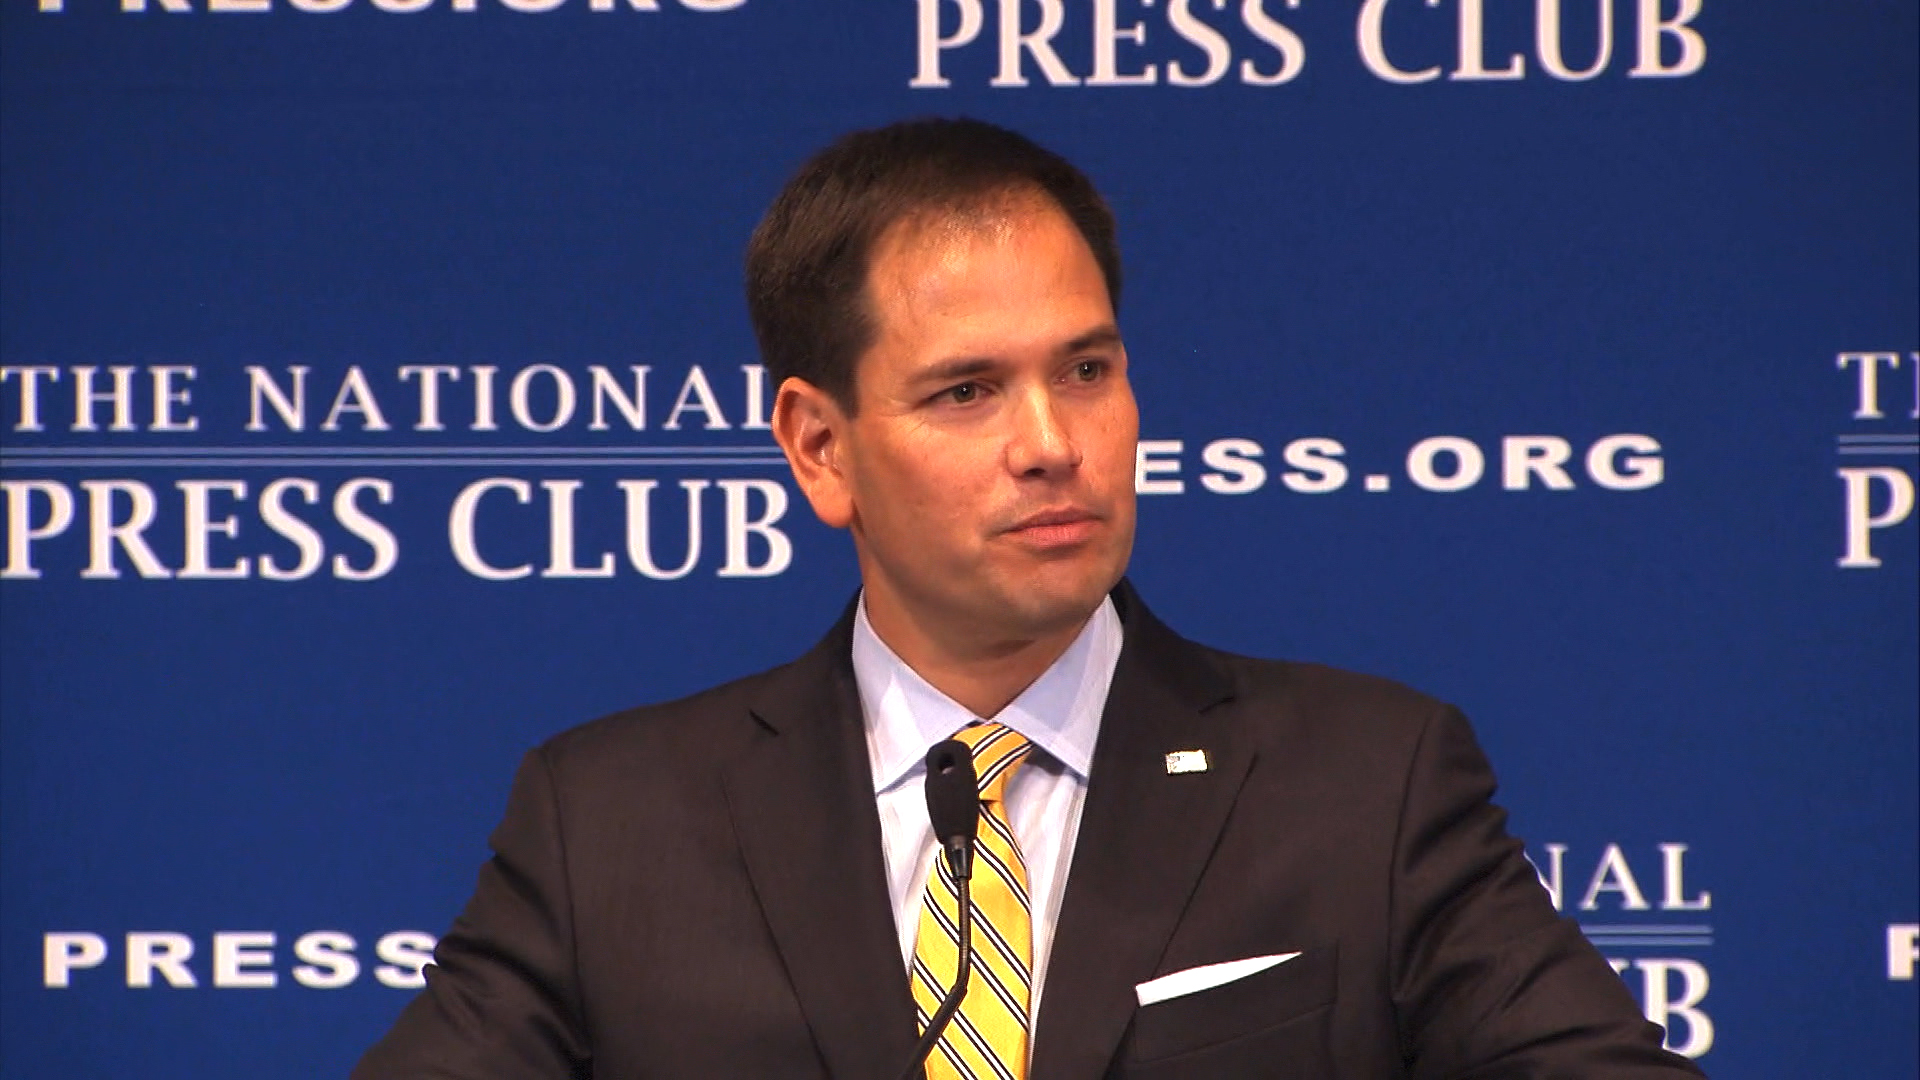 Rubio's rough response to pot question